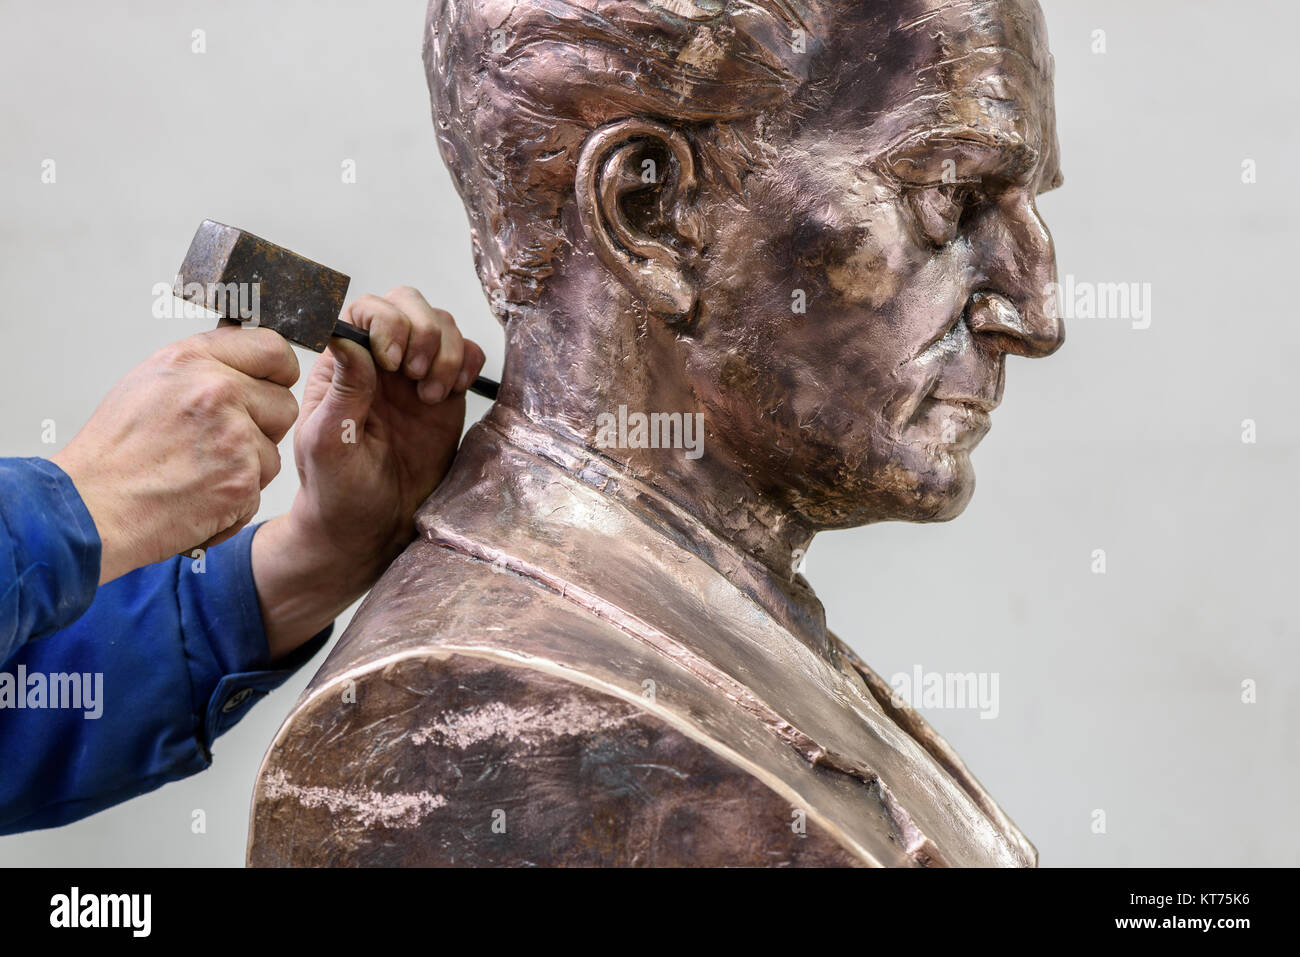 Sculptor working. Adding the finishing touches to the bust of a male figure. - Stock Image